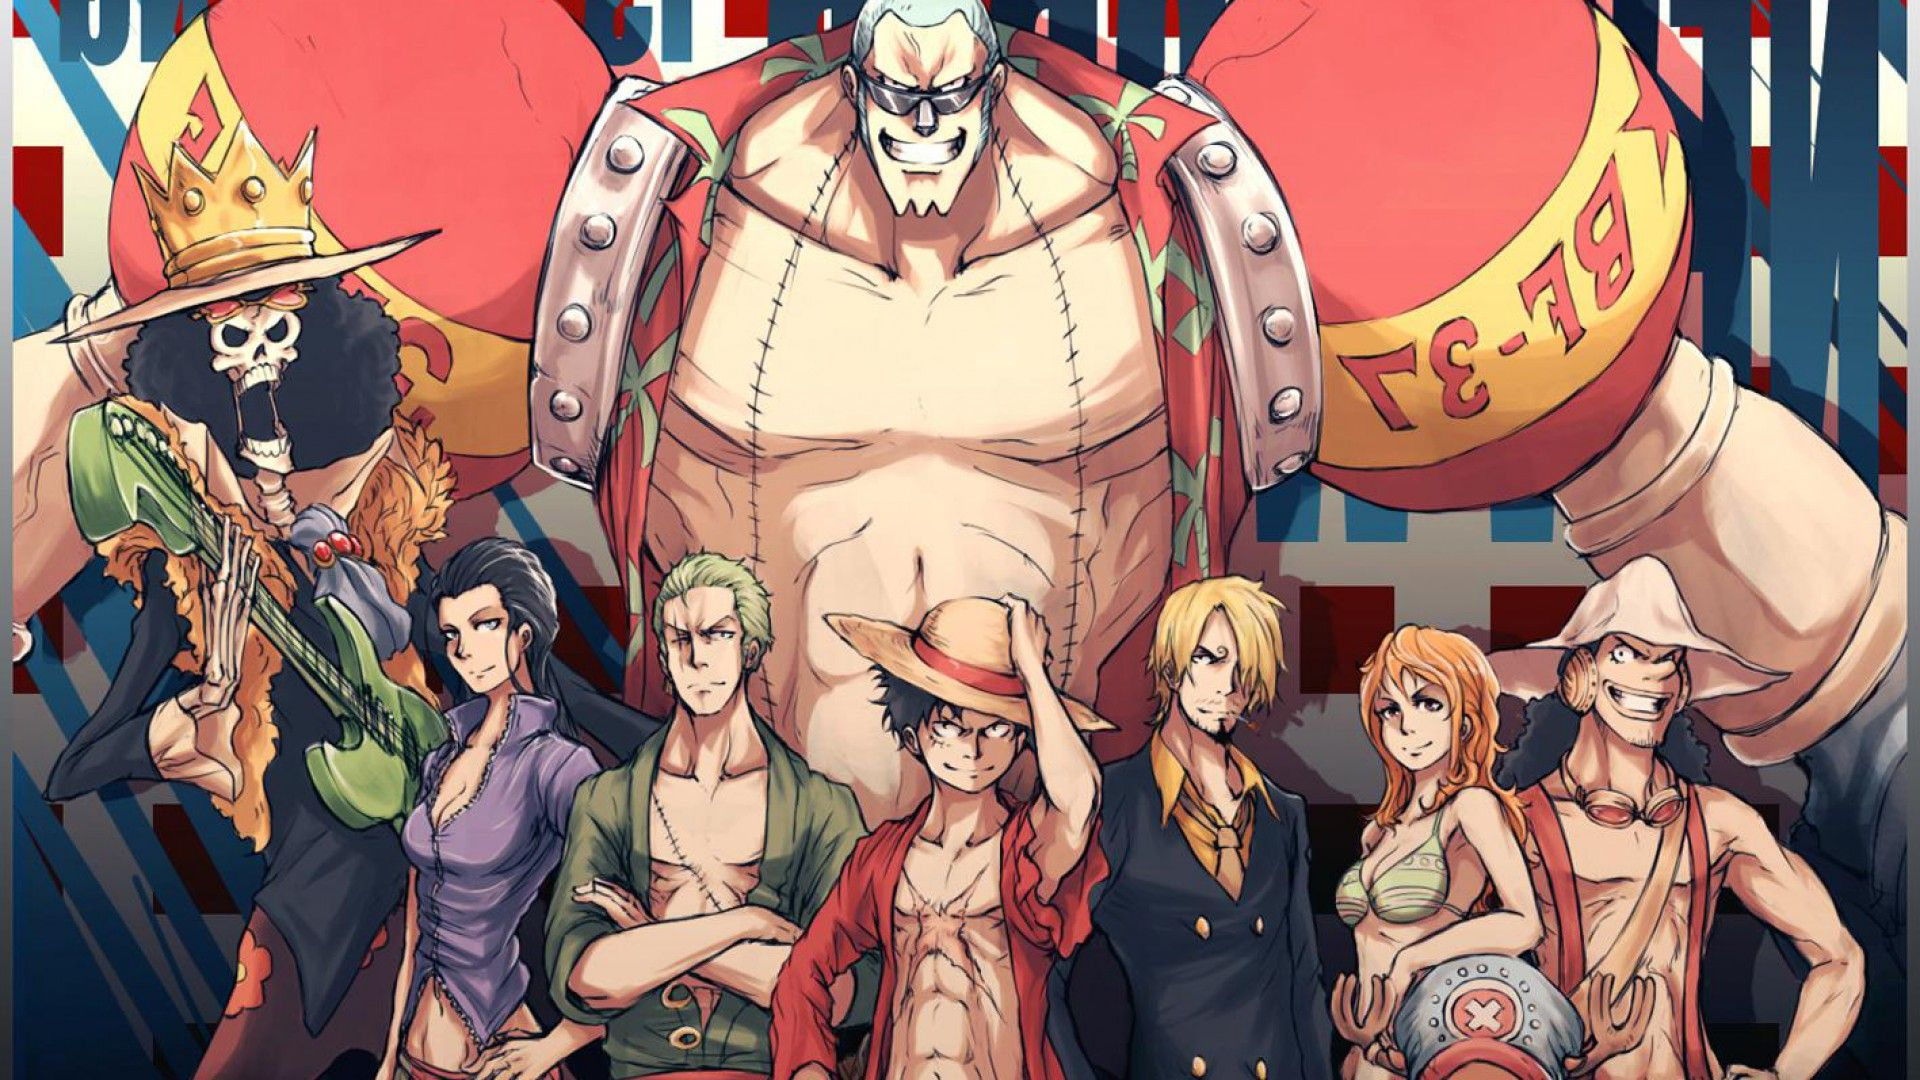 One Piece Three Monsters A Straw Hat, Anime 2019